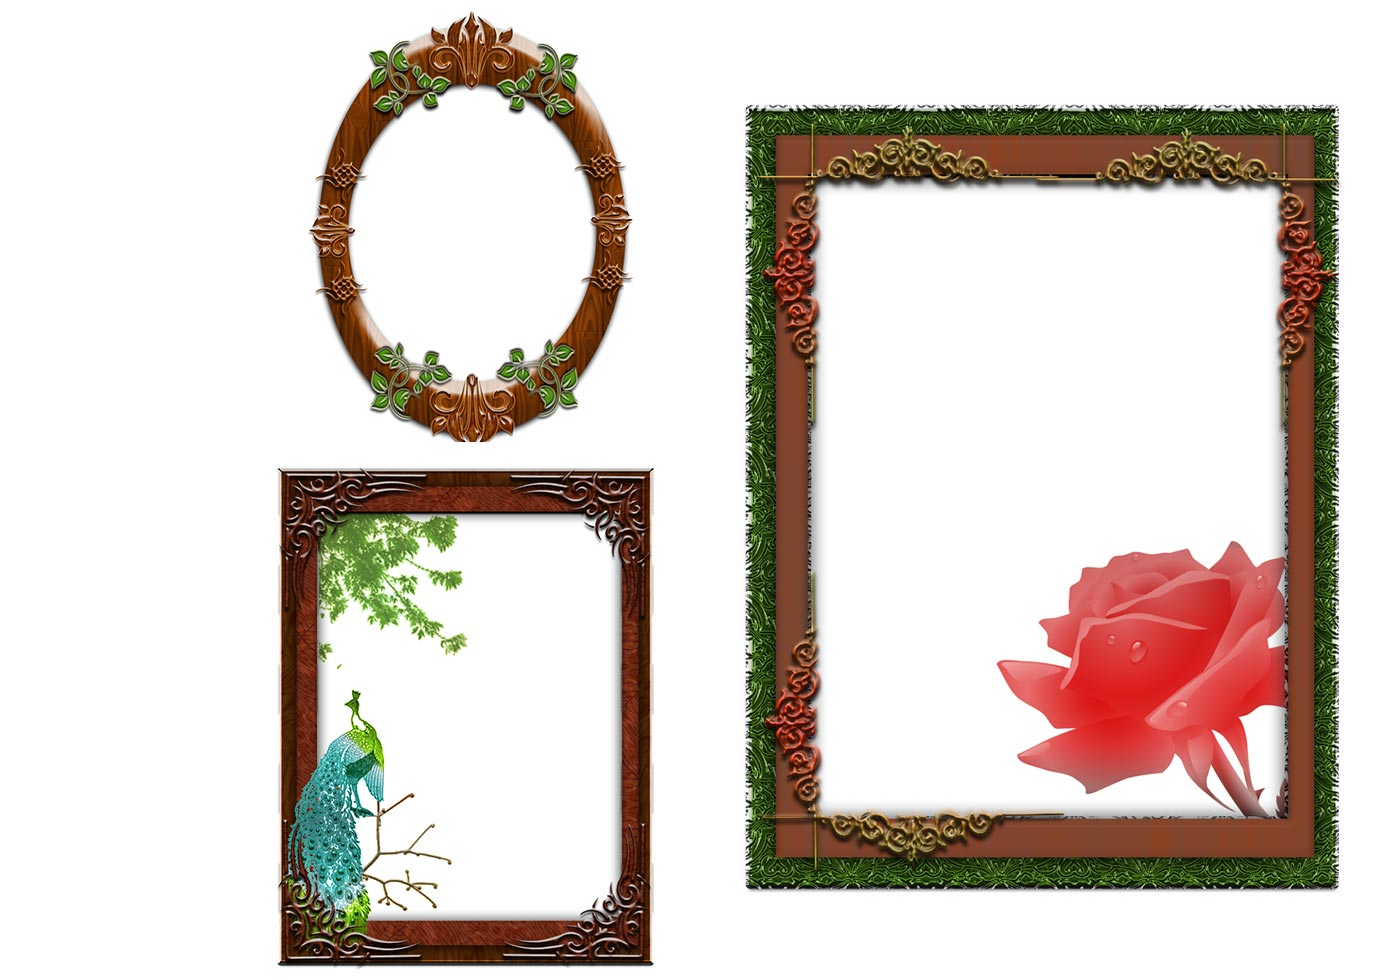 Fantasy Wooden Frames Psds Free Photoshop Brushes At